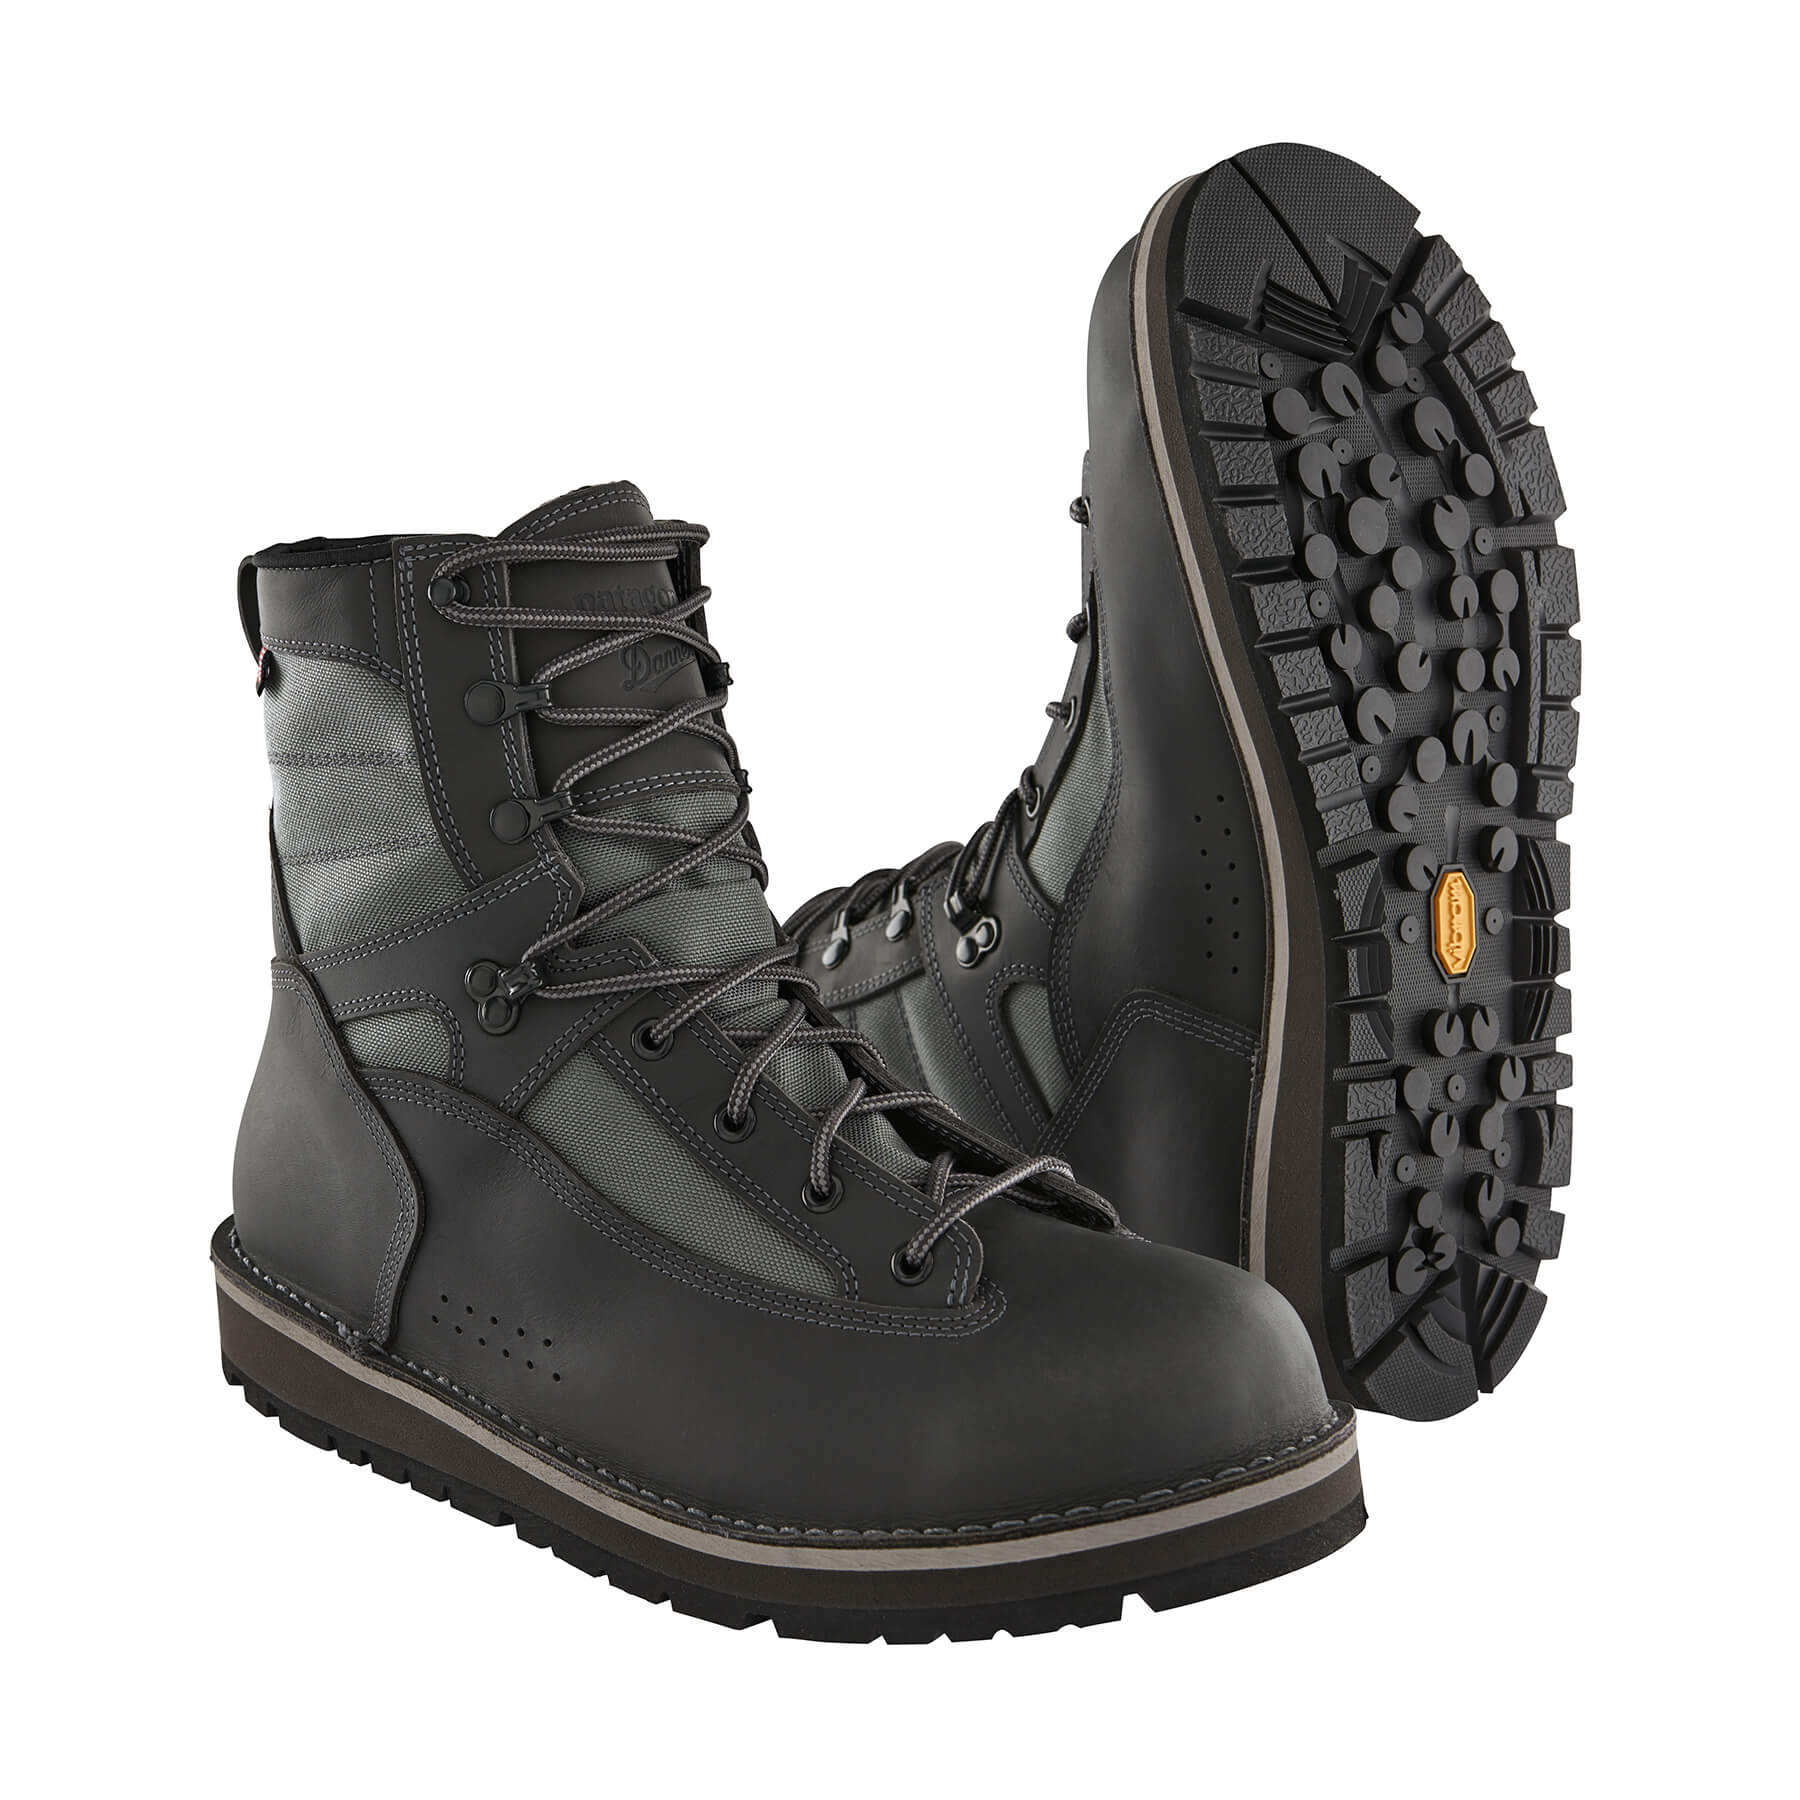 Patagonia Foot Tractor Wading Boots Sticky Rubber